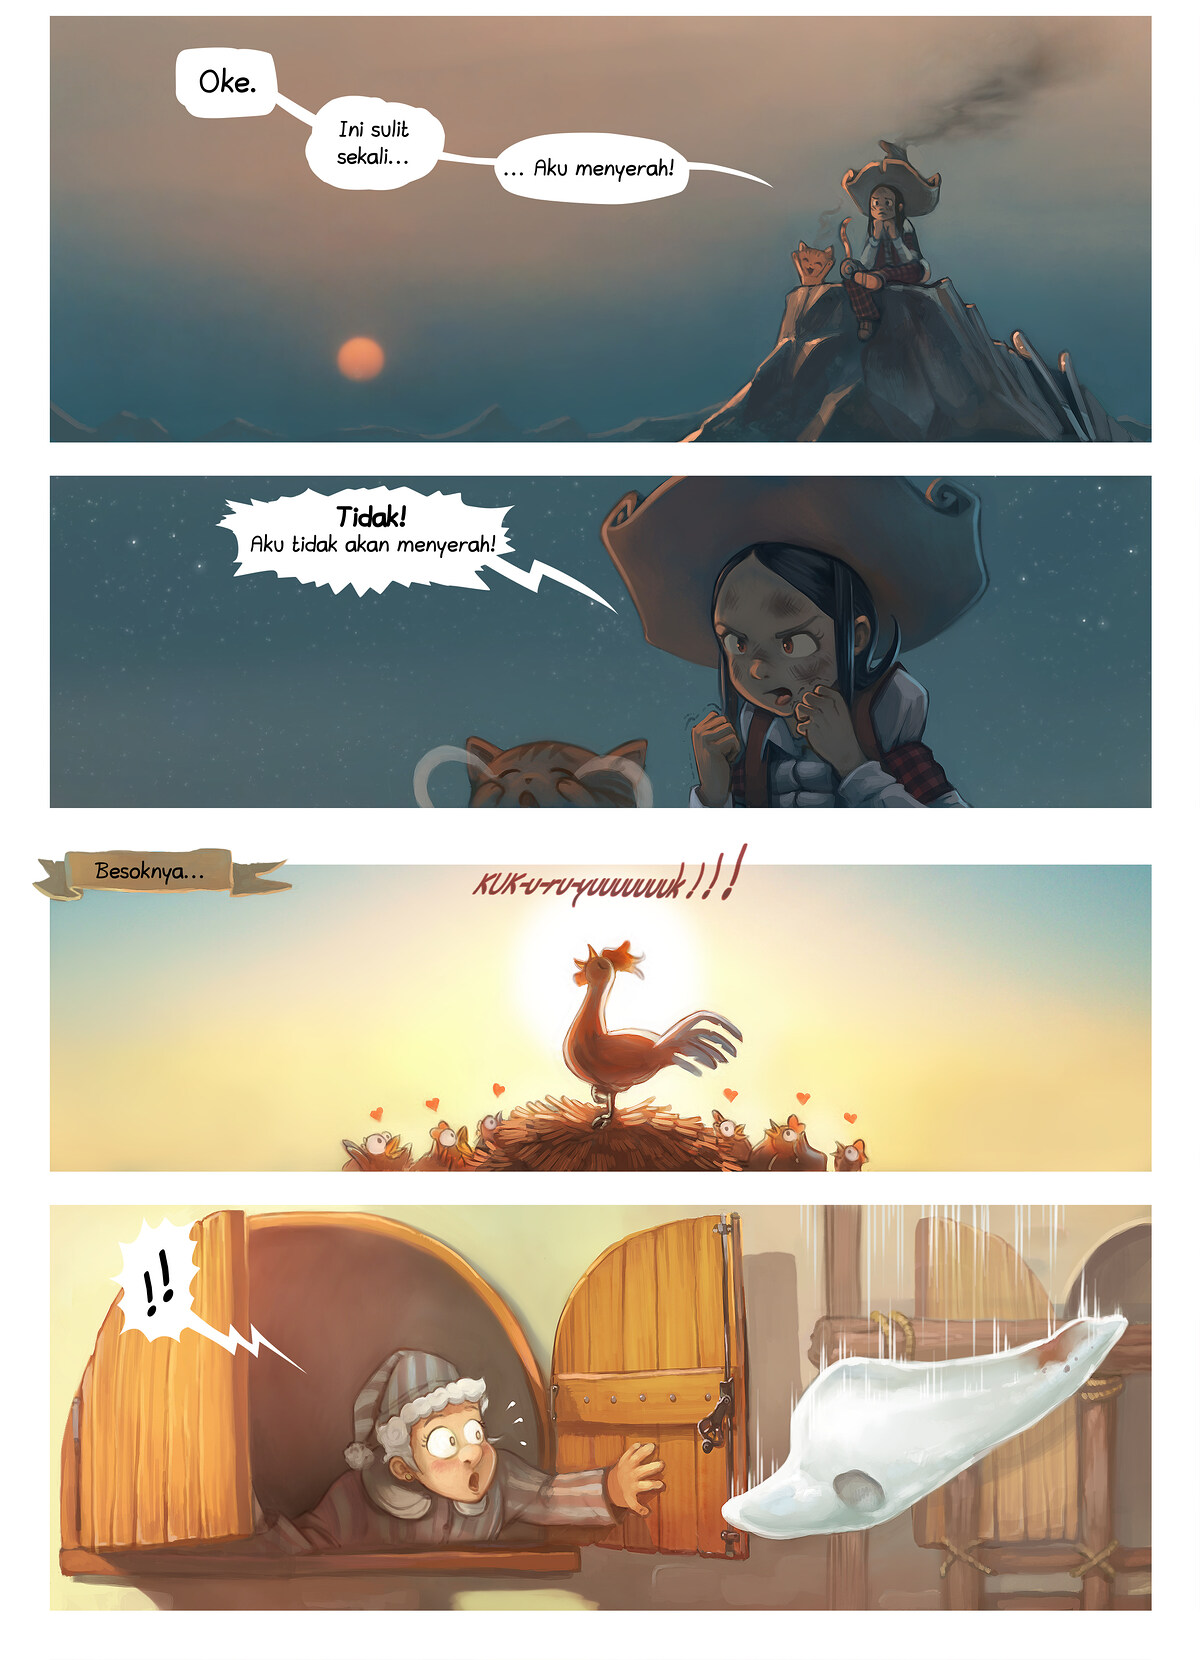 A webcomic page of Pepper&Carrot, episode 14 [id], halaman 5